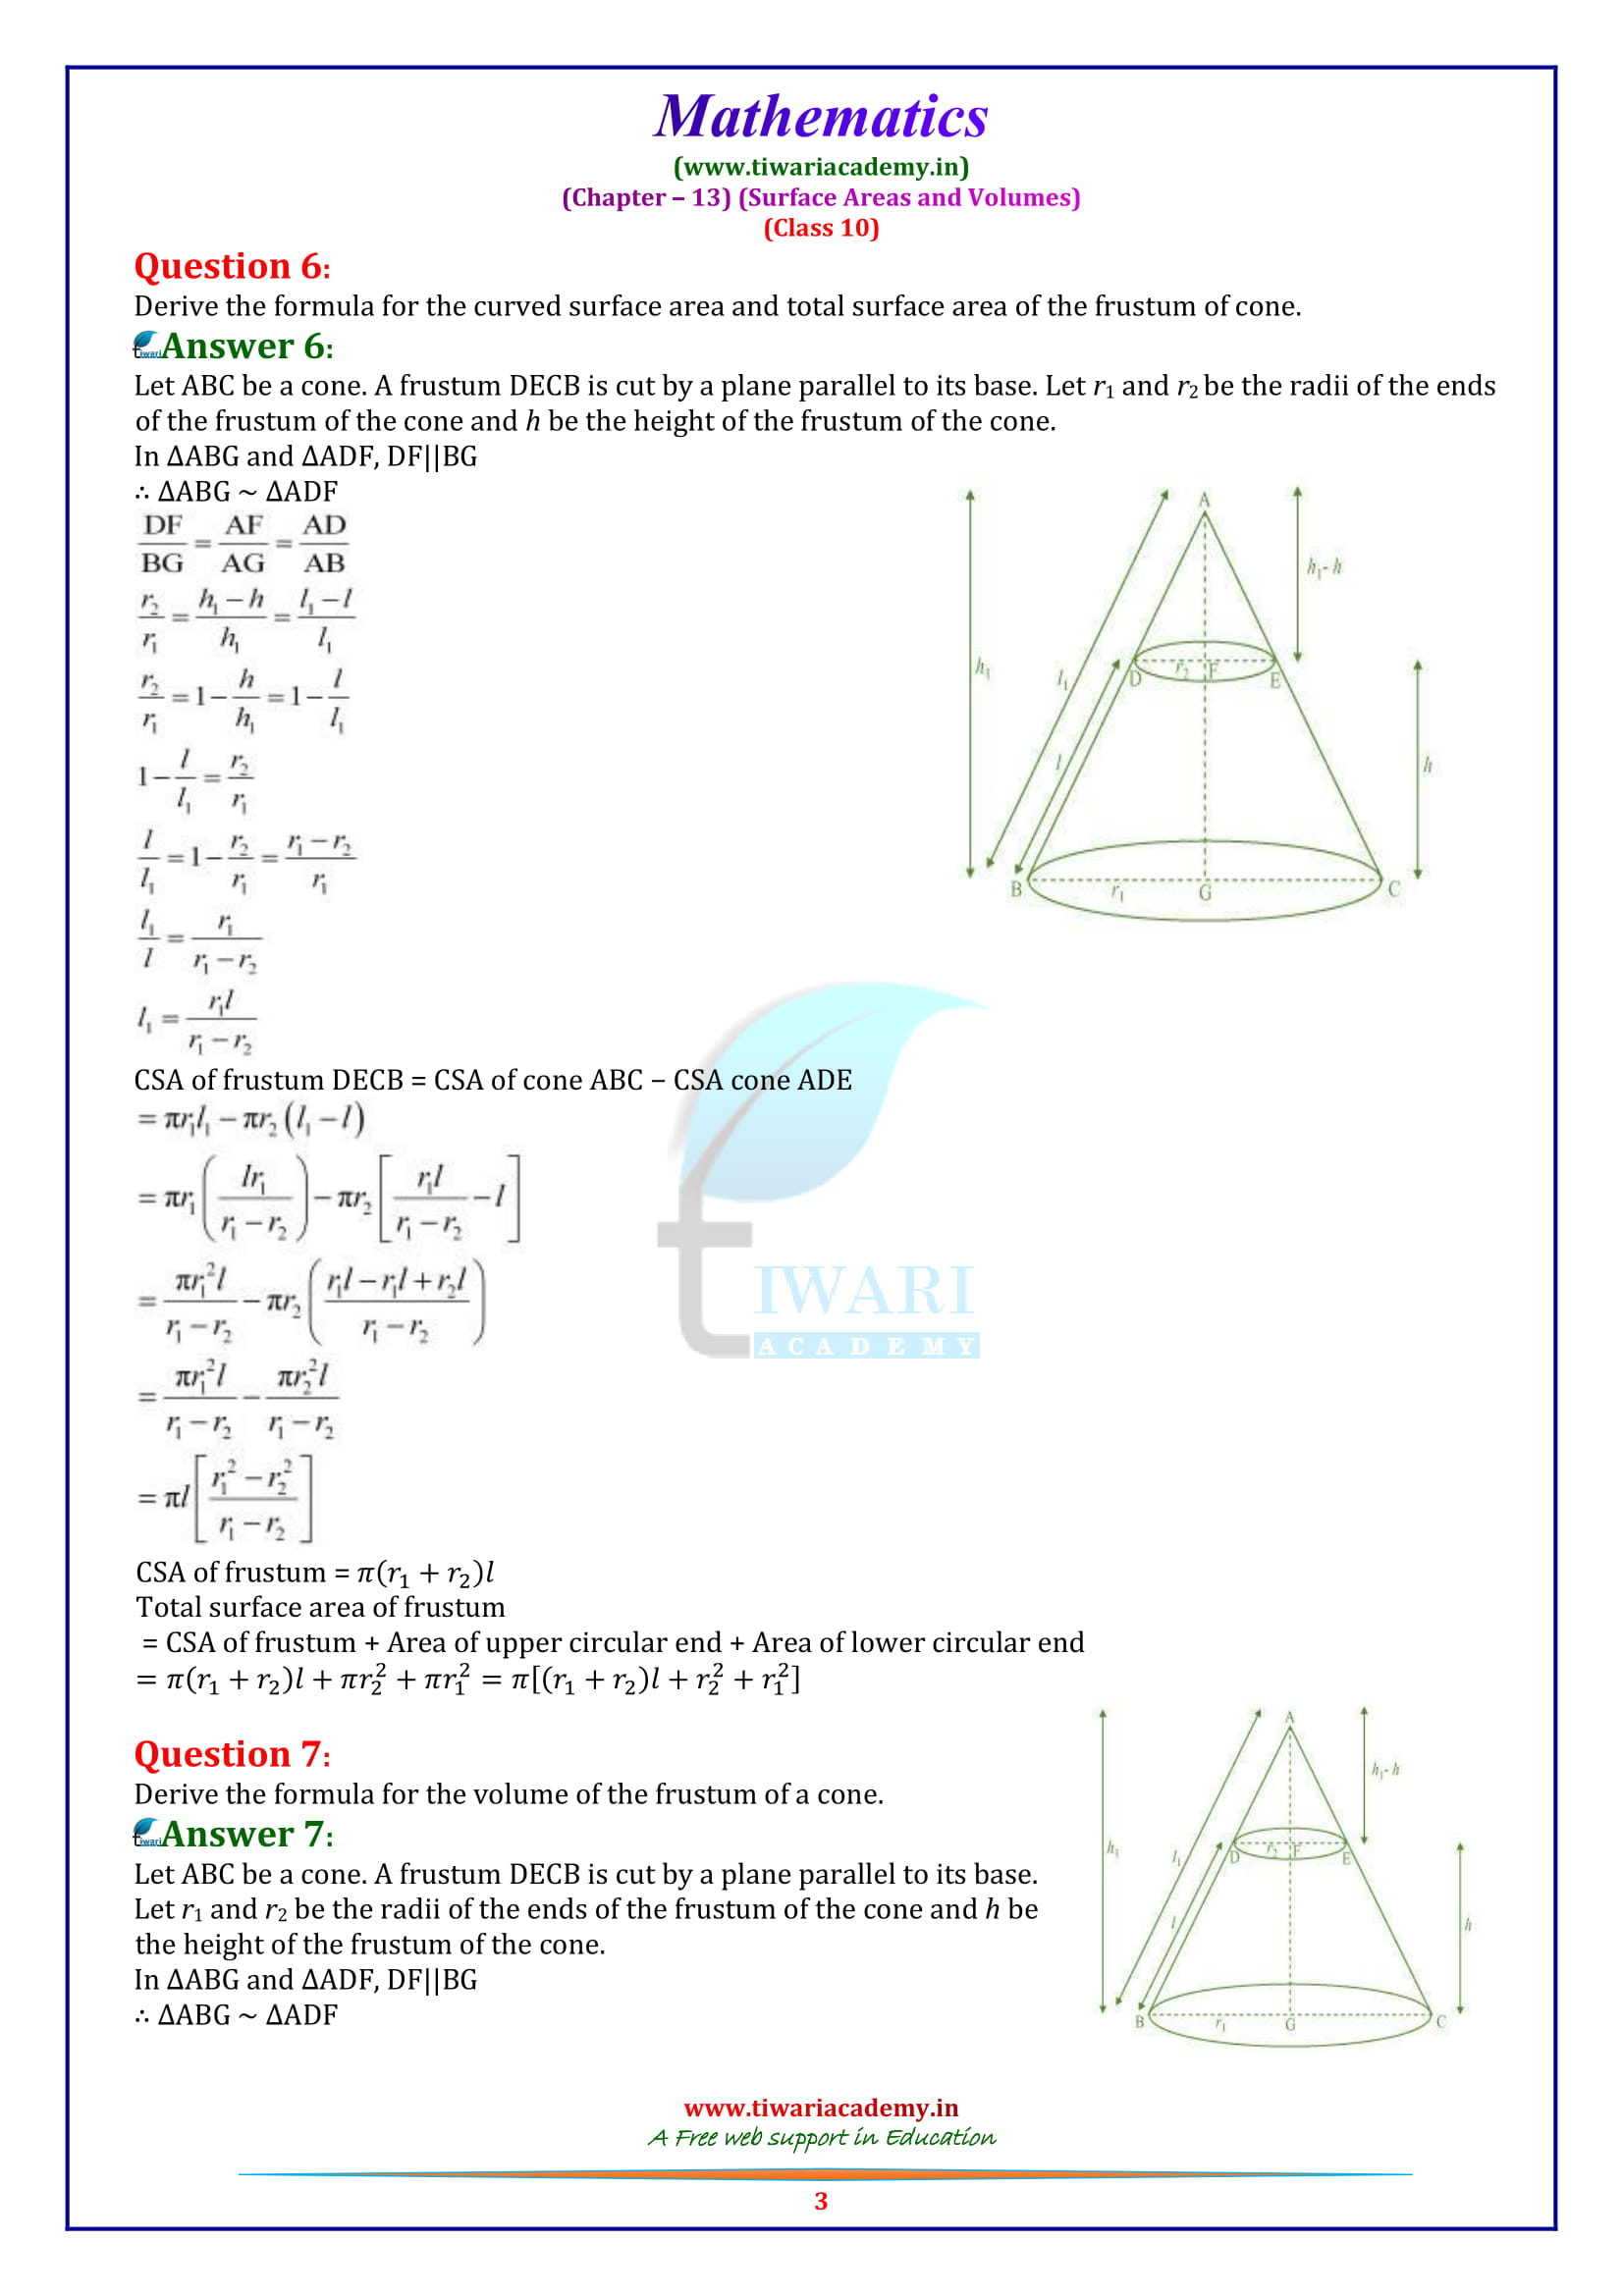 10 Maths exercise 13.5 question 1, 2, 3, 4, 5, 6, 7